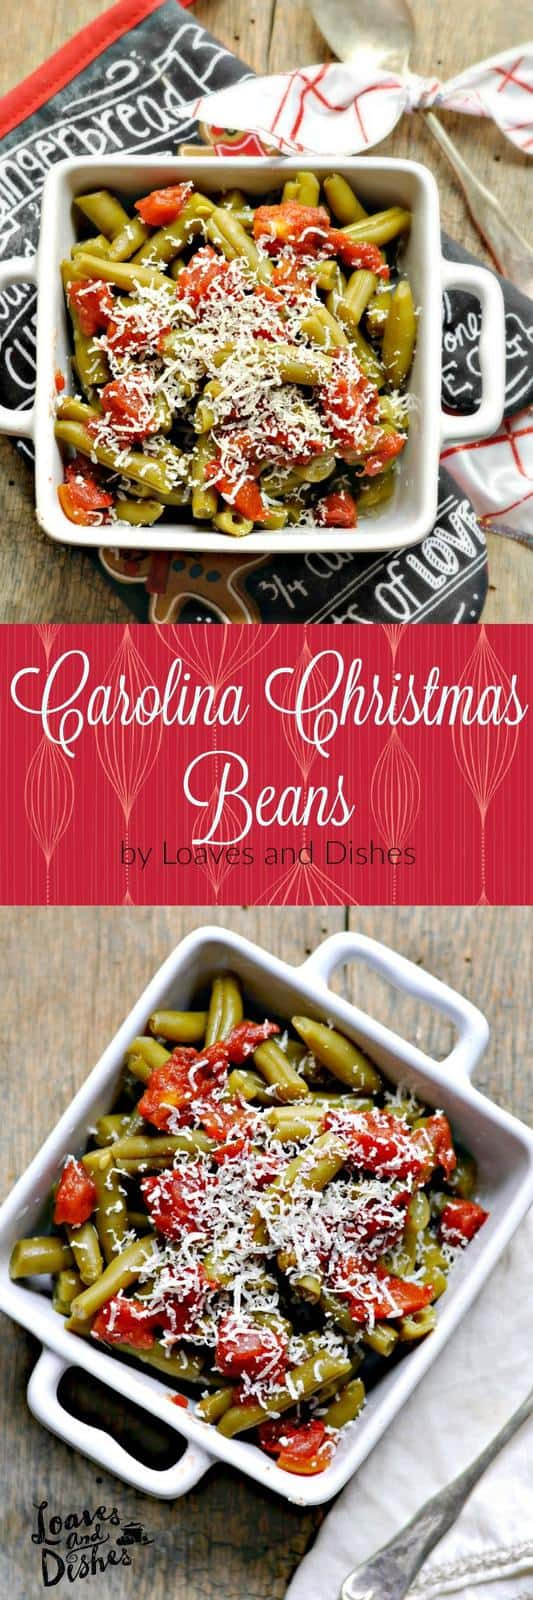 Need a new green bean dish for the Holidays? Sure you do! This one is Quick and Easy - Tastes WONDERFUL! You can do it - come on over and try!